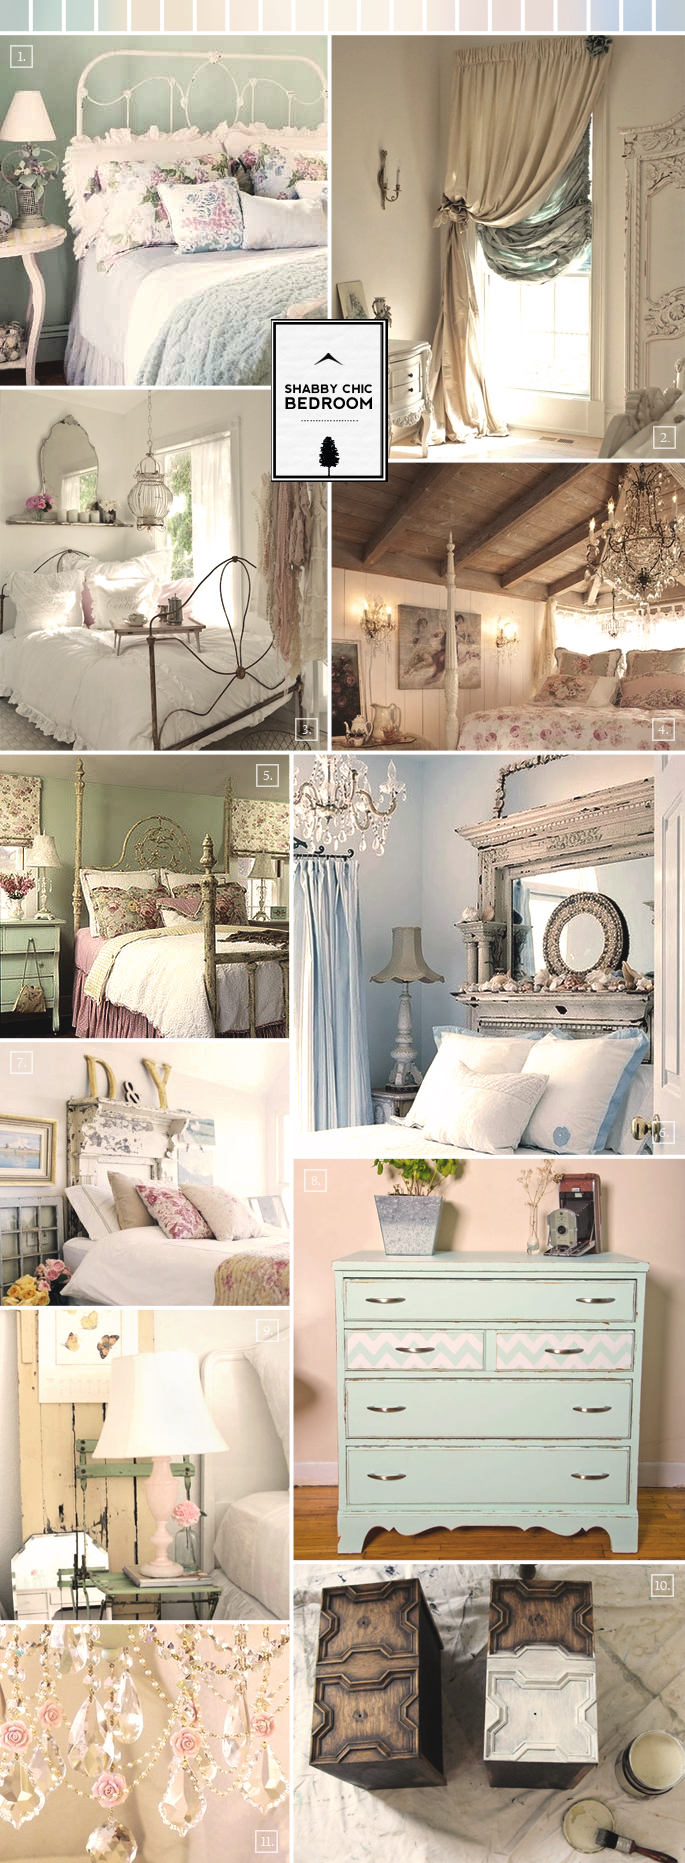 Shabby chic bedroom ideas and decor inspiration home for Bedroom inspiration shabby chic